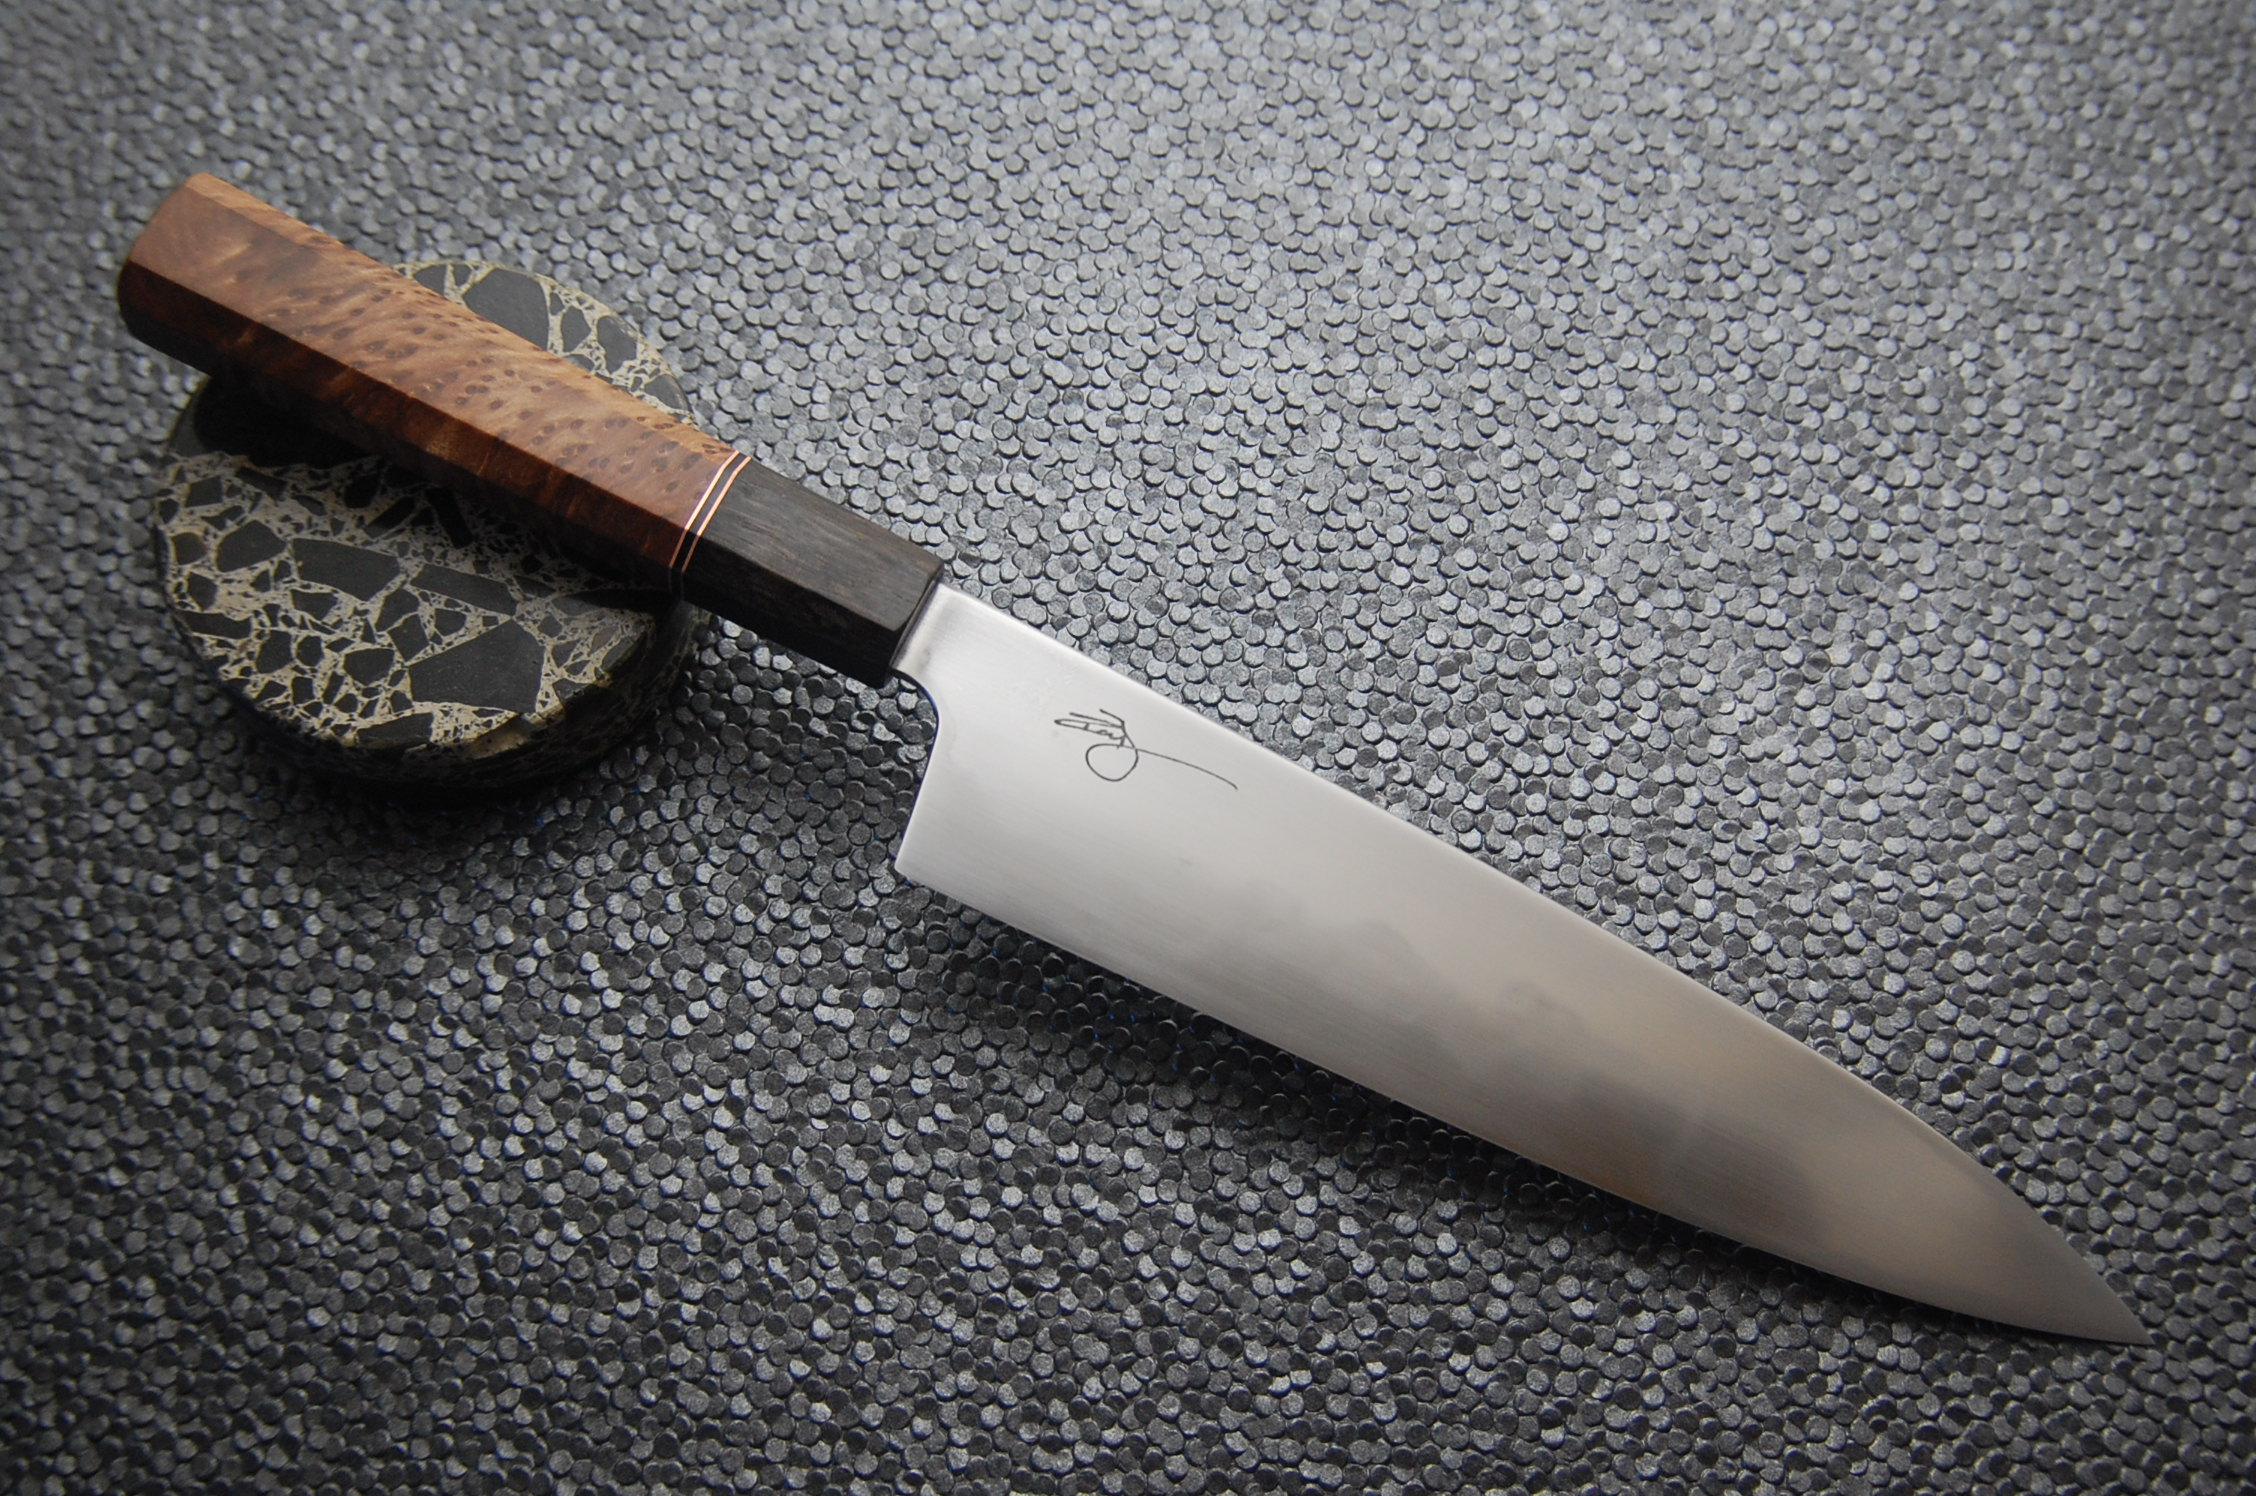 The steel is 1095 high carbon and the handle consists of black lacewood, copper, G10, and redwood burl.